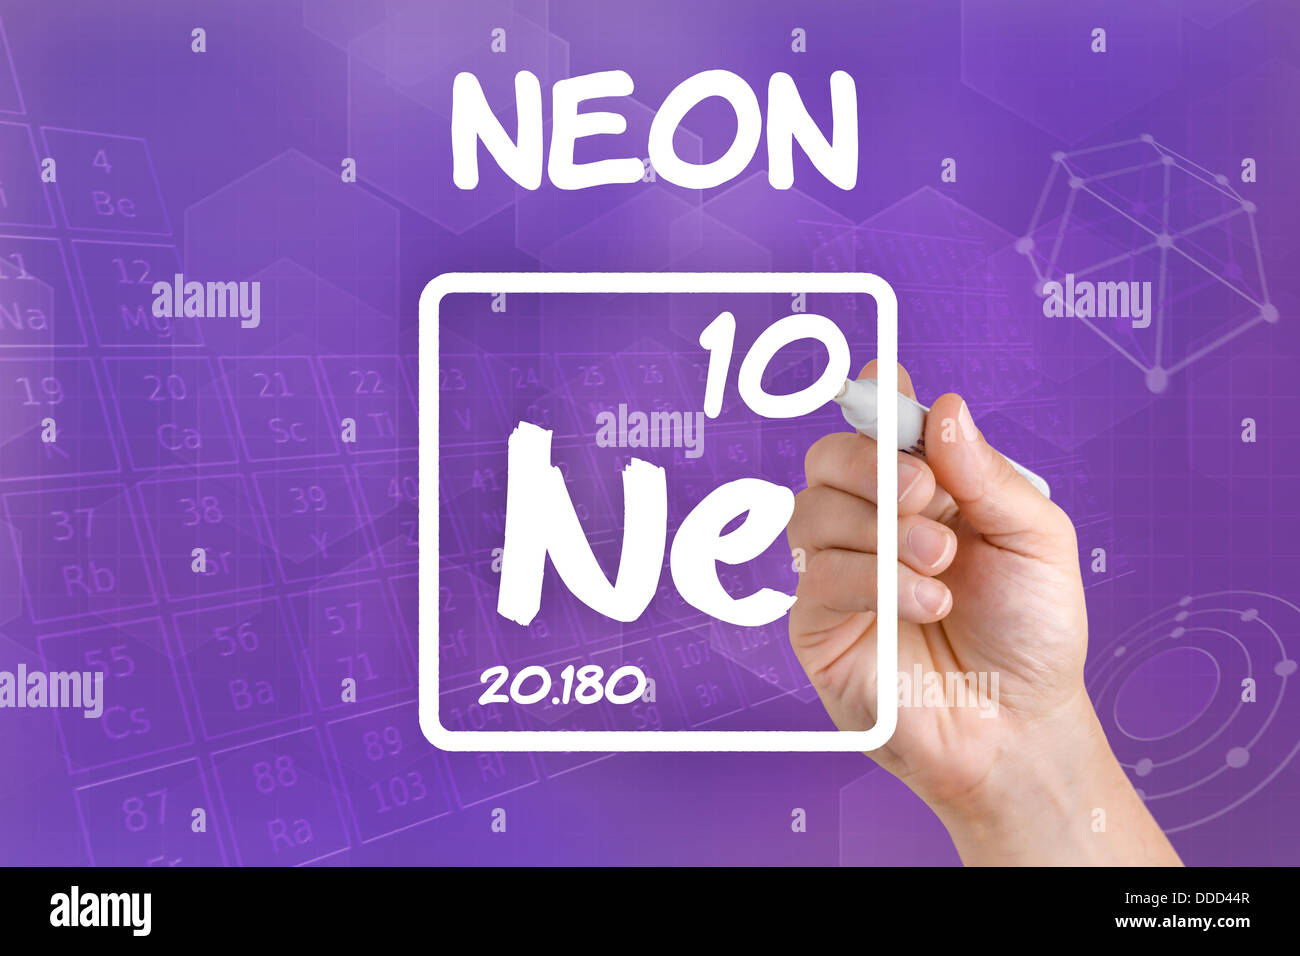 Symbol for the chemical element neon stock photo 59910279 alamy symbol for the chemical element neon buycottarizona Choice Image